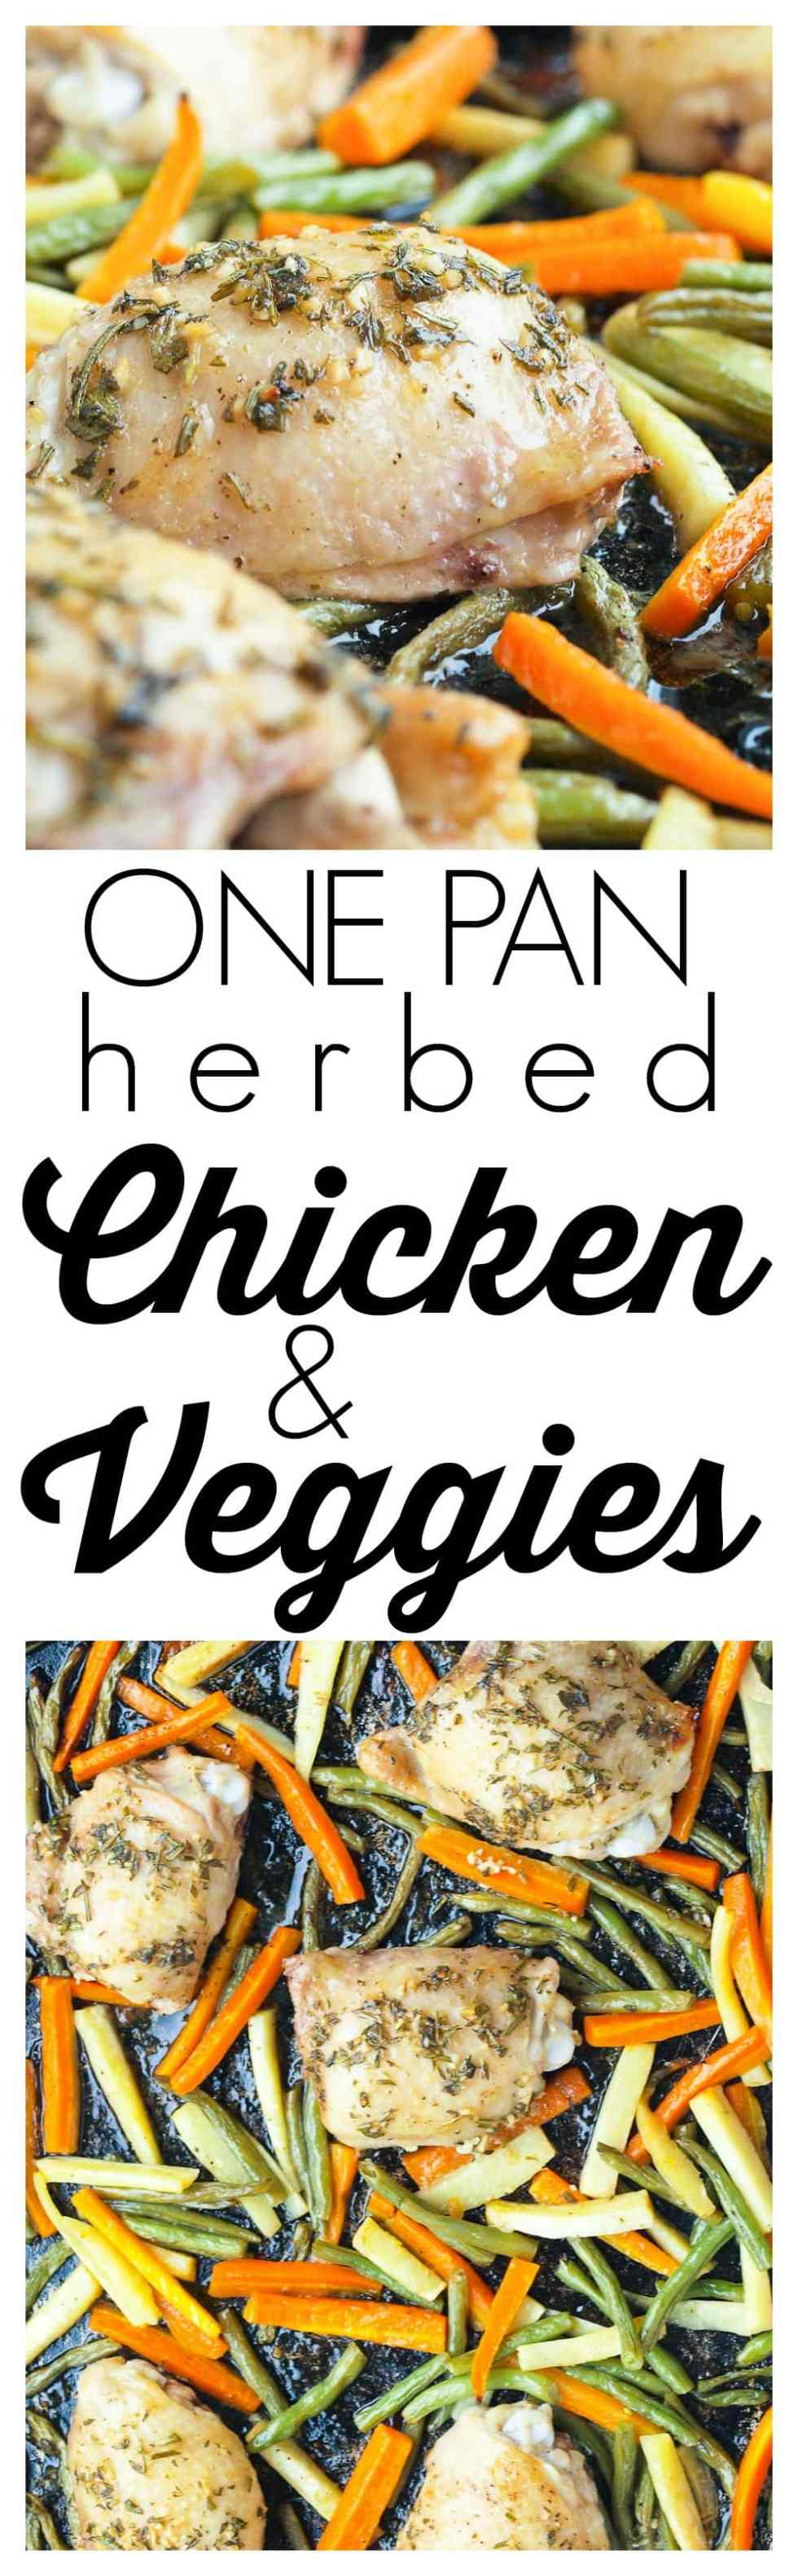 One Pan Chicken and Vegetables with Fresh Herbs Recipe. This is a healthy, clean eating recipe that is quick and easy for weeknight dinners. One pan means quick clean up. There's tons of flavor and the whole family will love it.